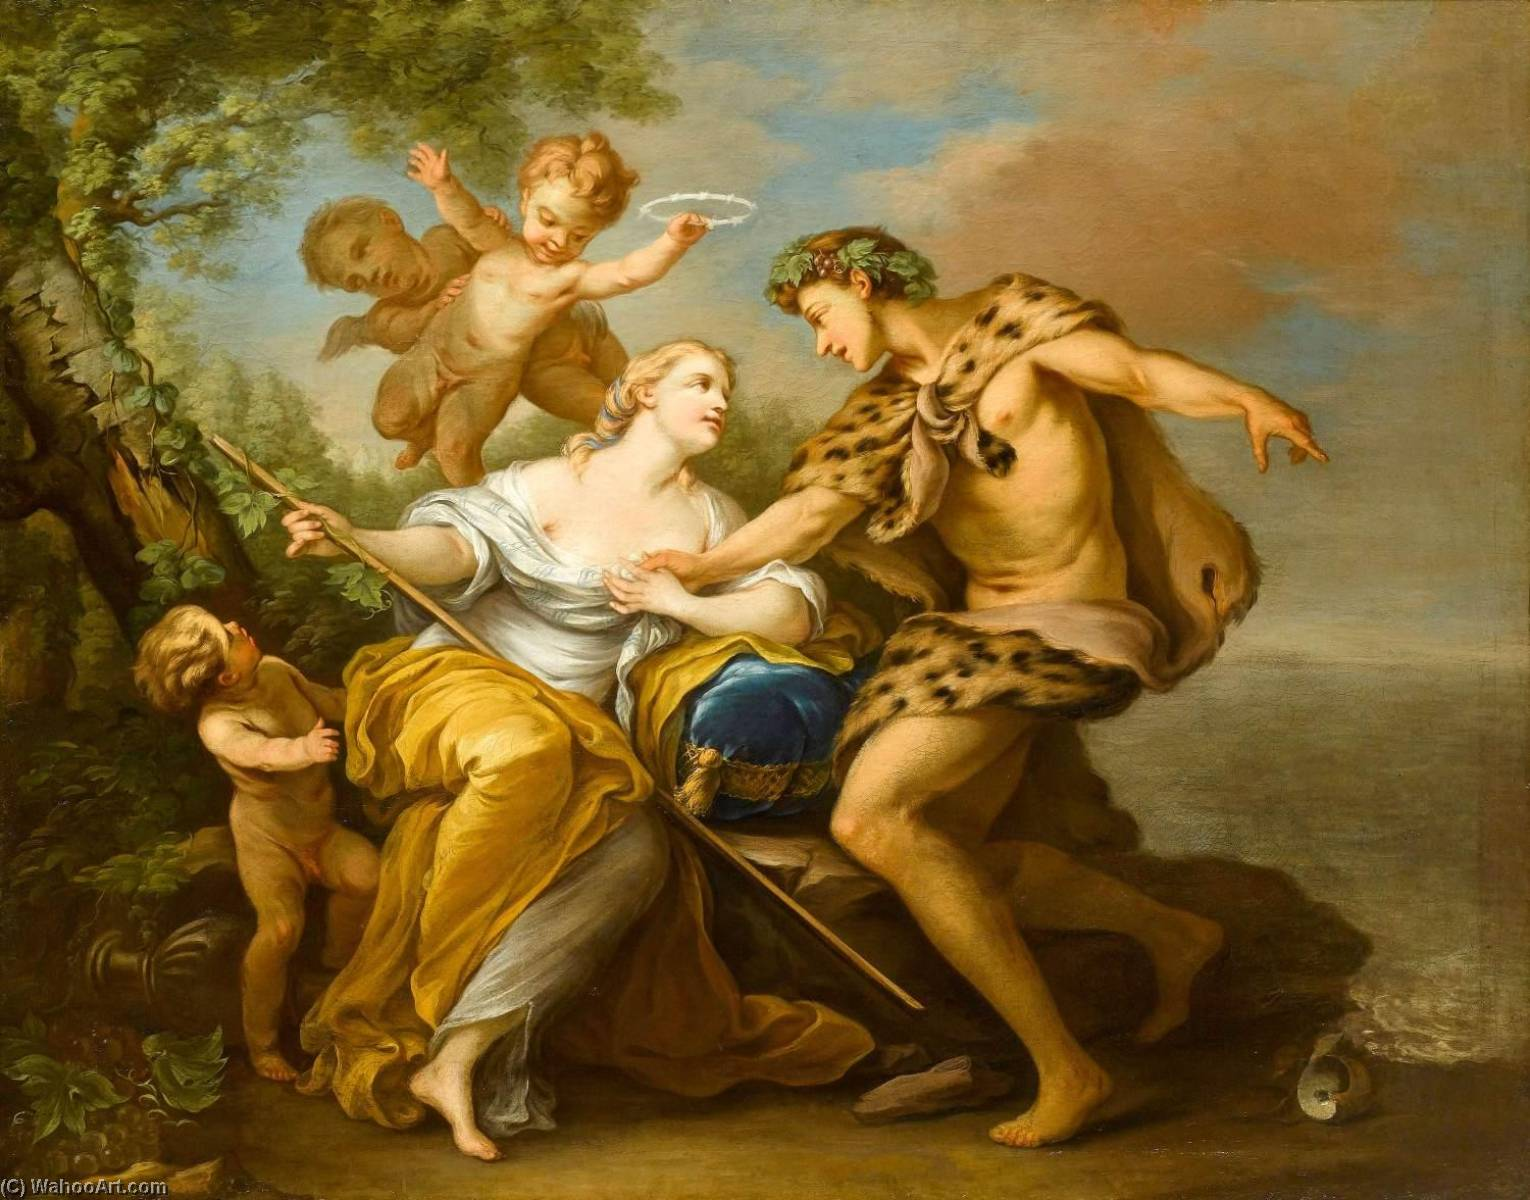 Order Famous Paintings Reproductions : Bacchus and Ariadne by Charles-André Van Loo (Carle Van Loo) (1705-1765, France) | WahooArt.com